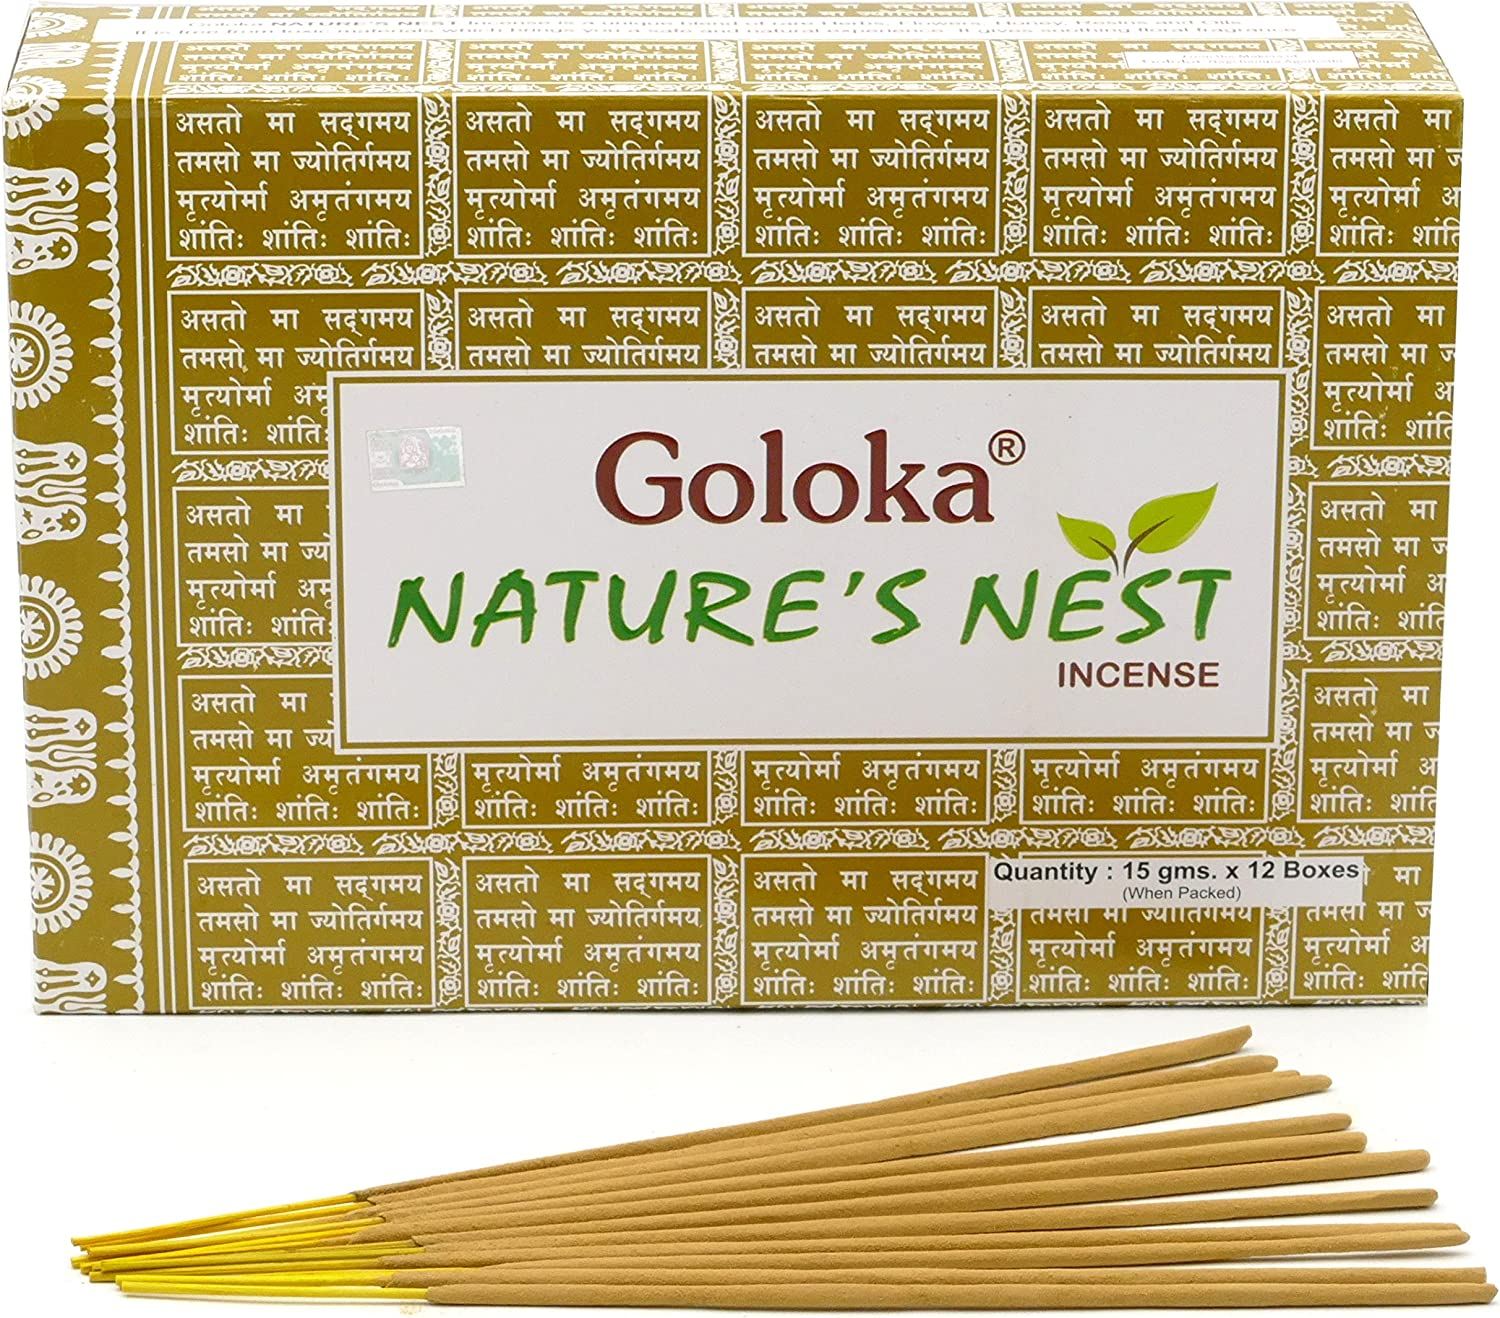 Goloka Nature's Nest Masala Incense Sticks 15gms x 12 Packs by Goloka